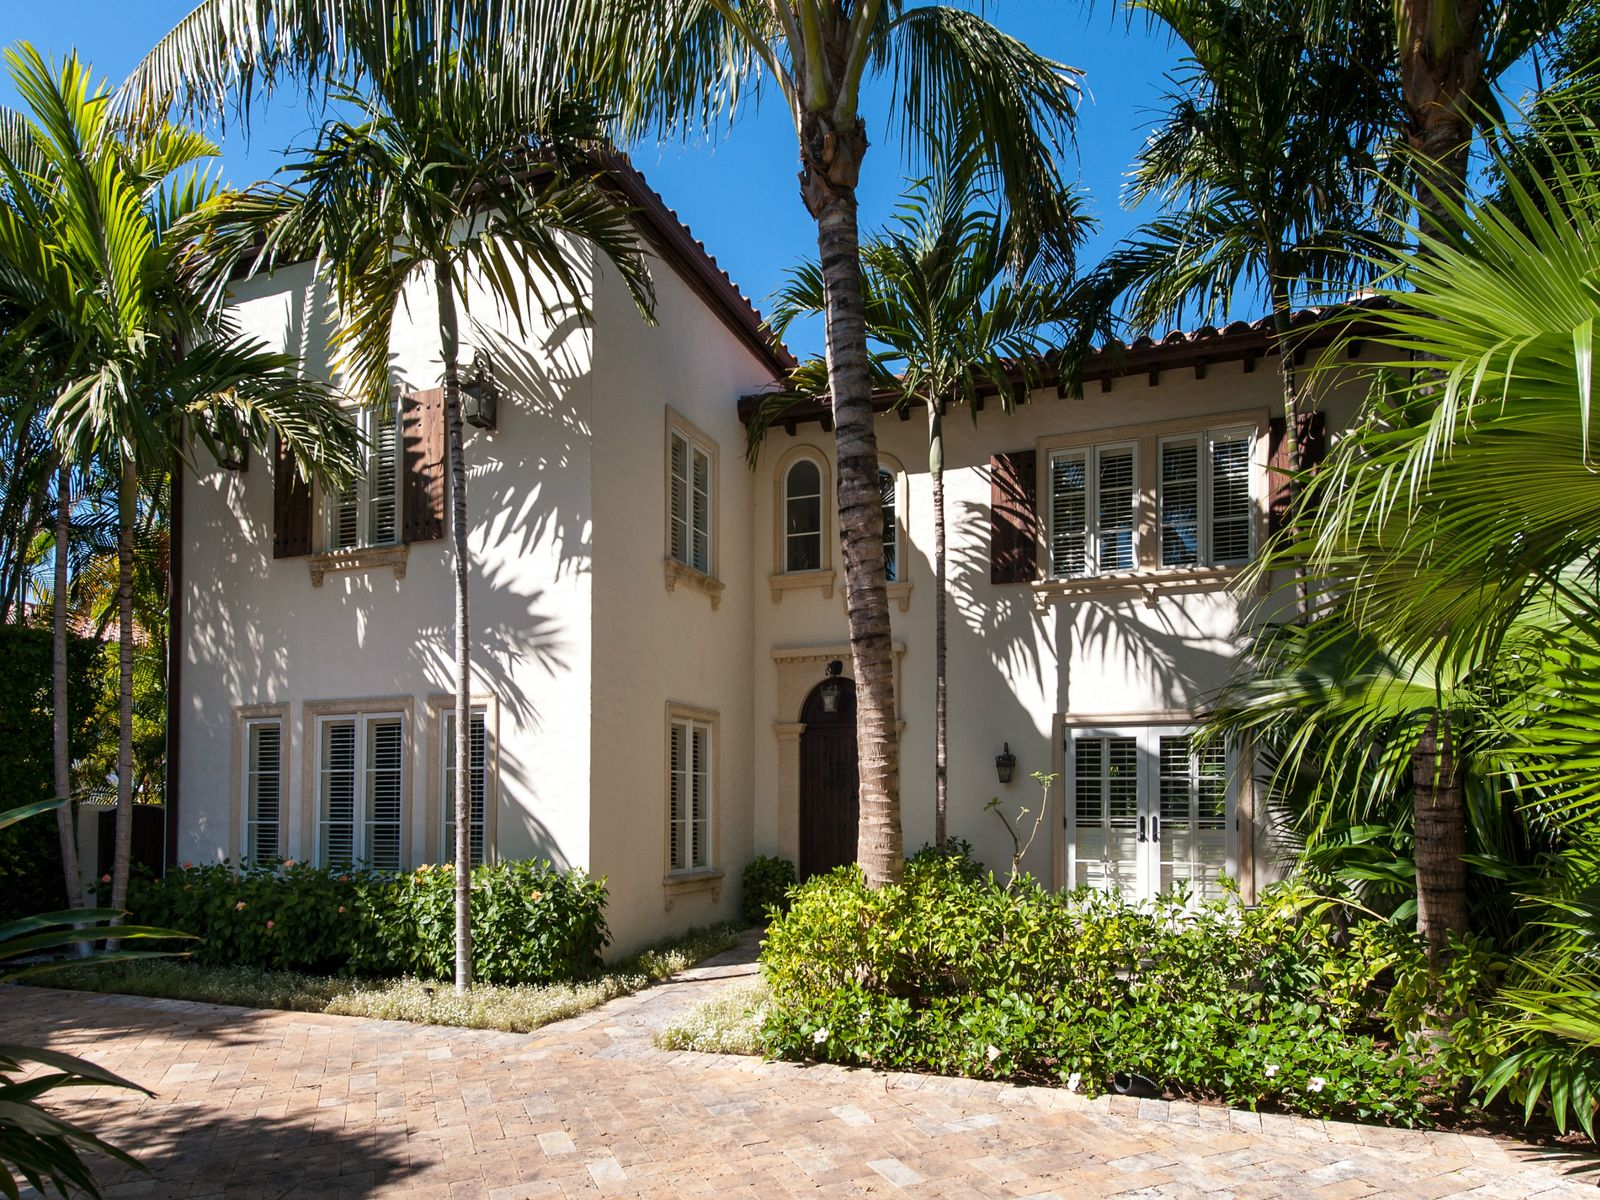 Enchanting Mediterranean Rental, Palm Beach FL Single Family Home - Palm Beach Real Estate